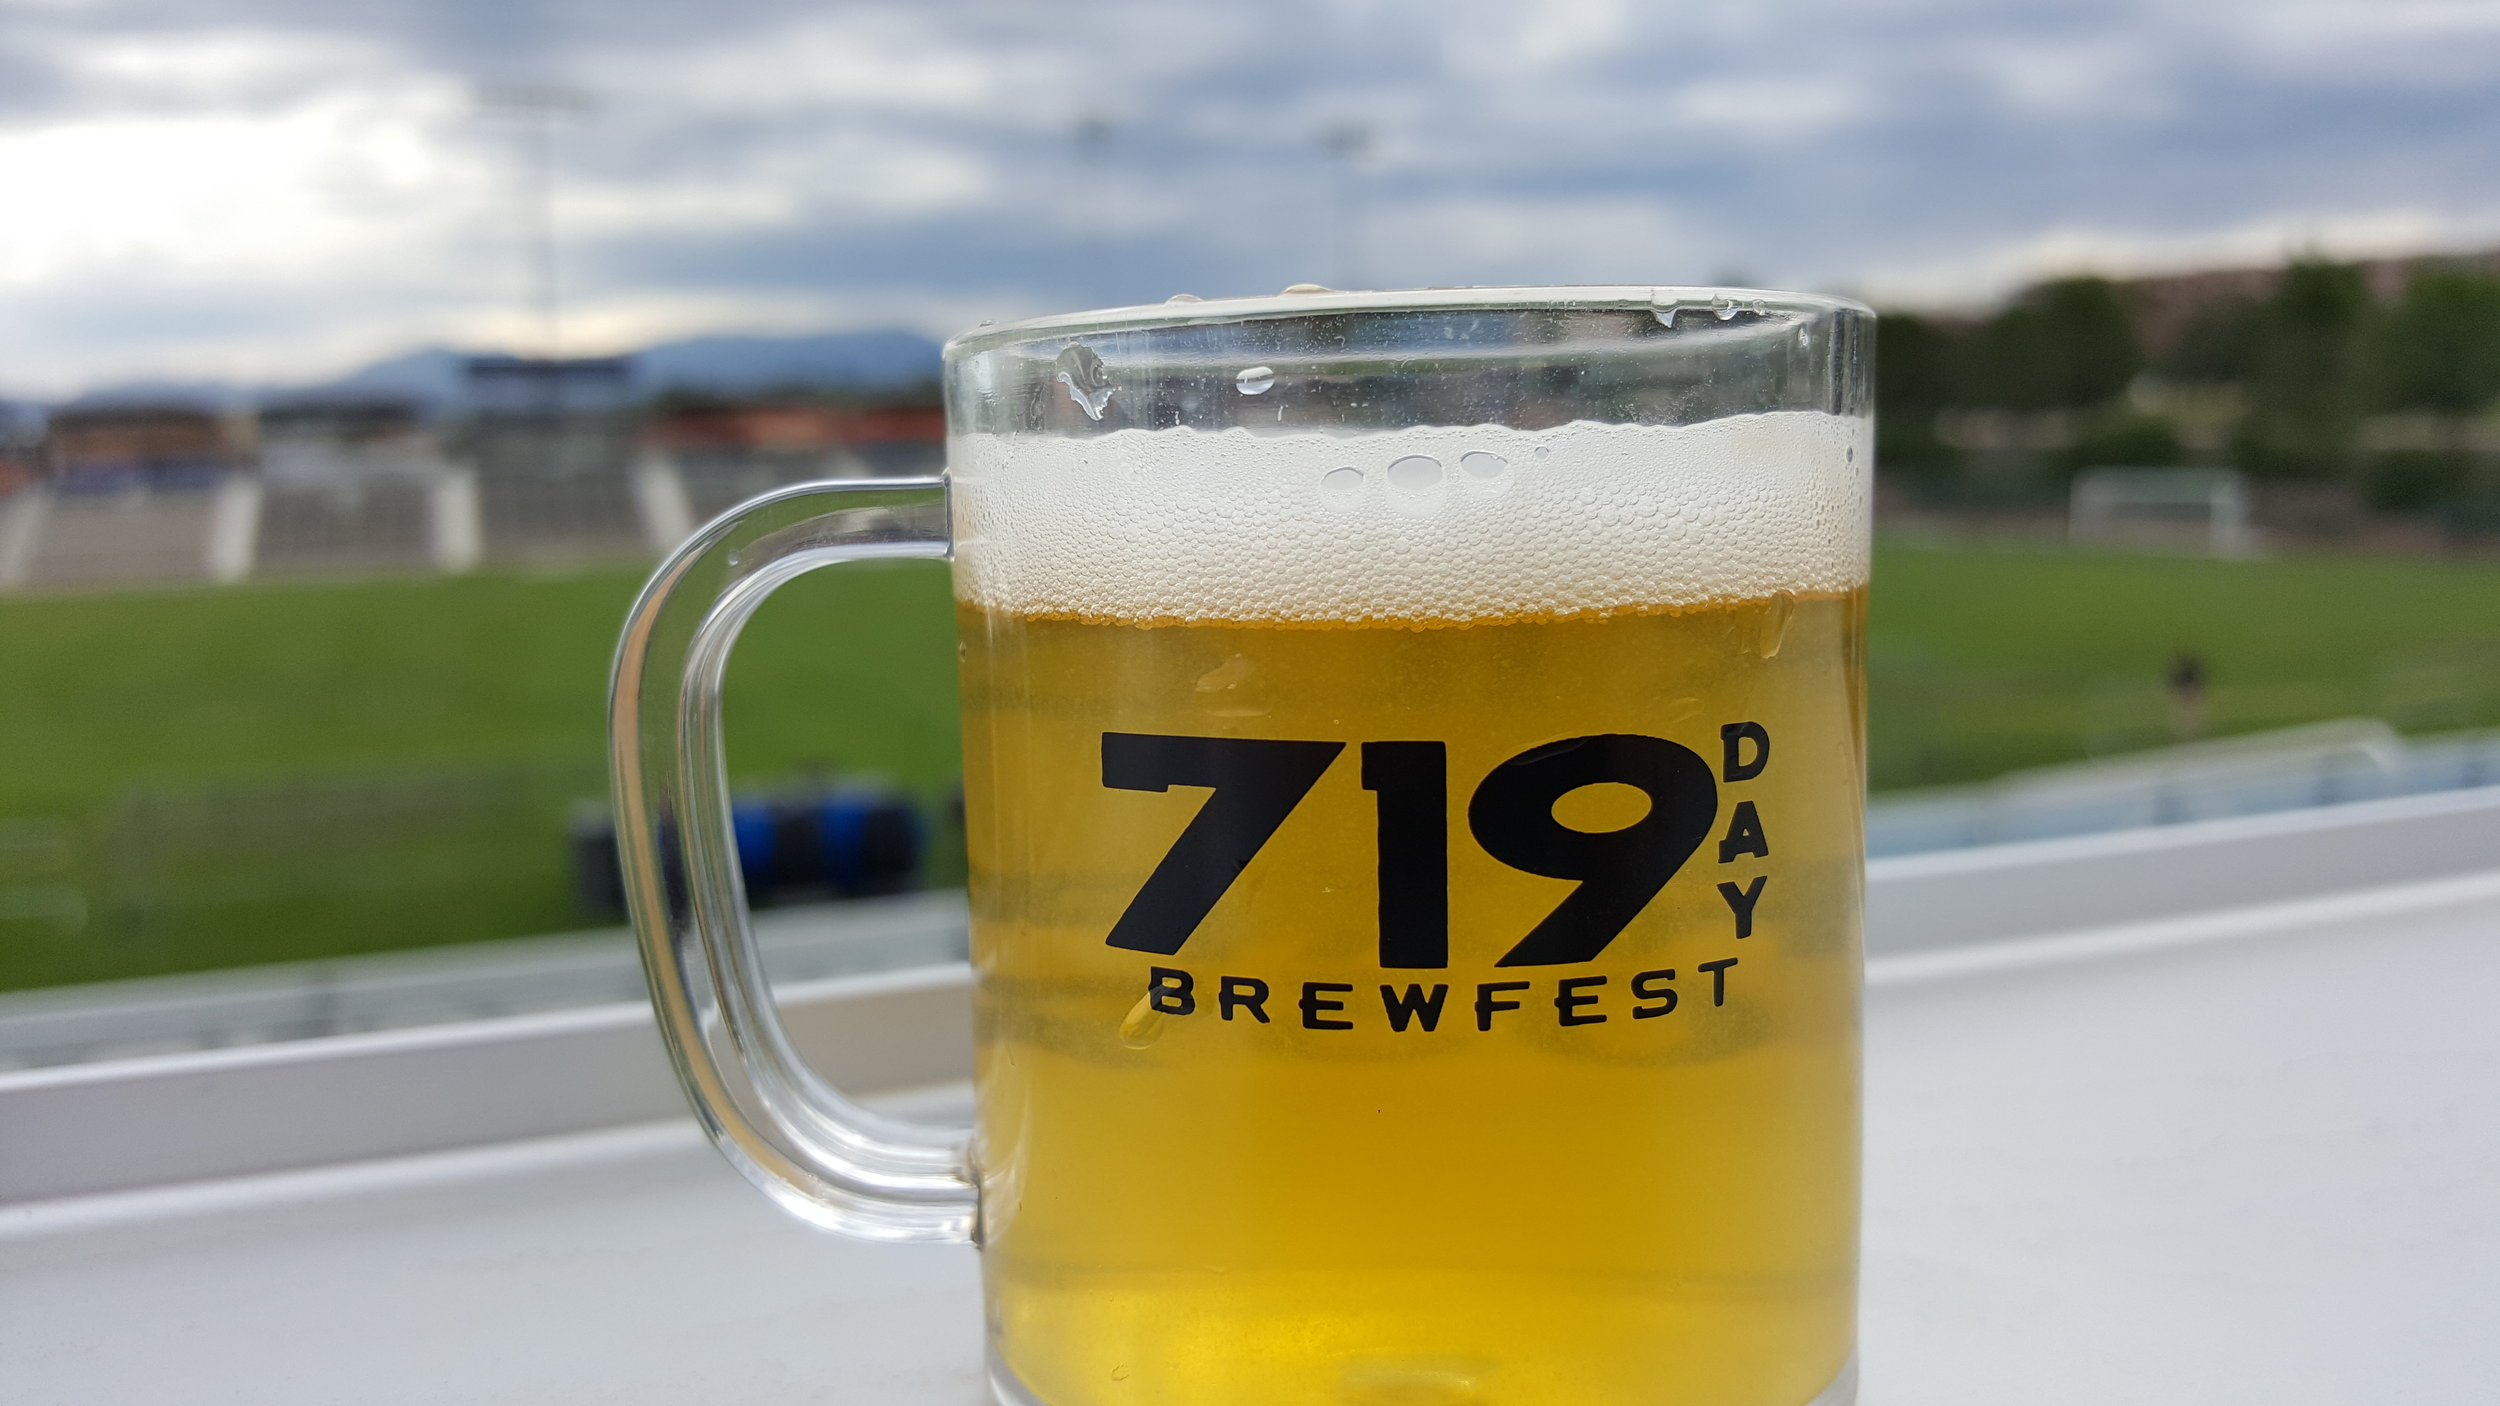 719 Day glass with storm clouds in the background